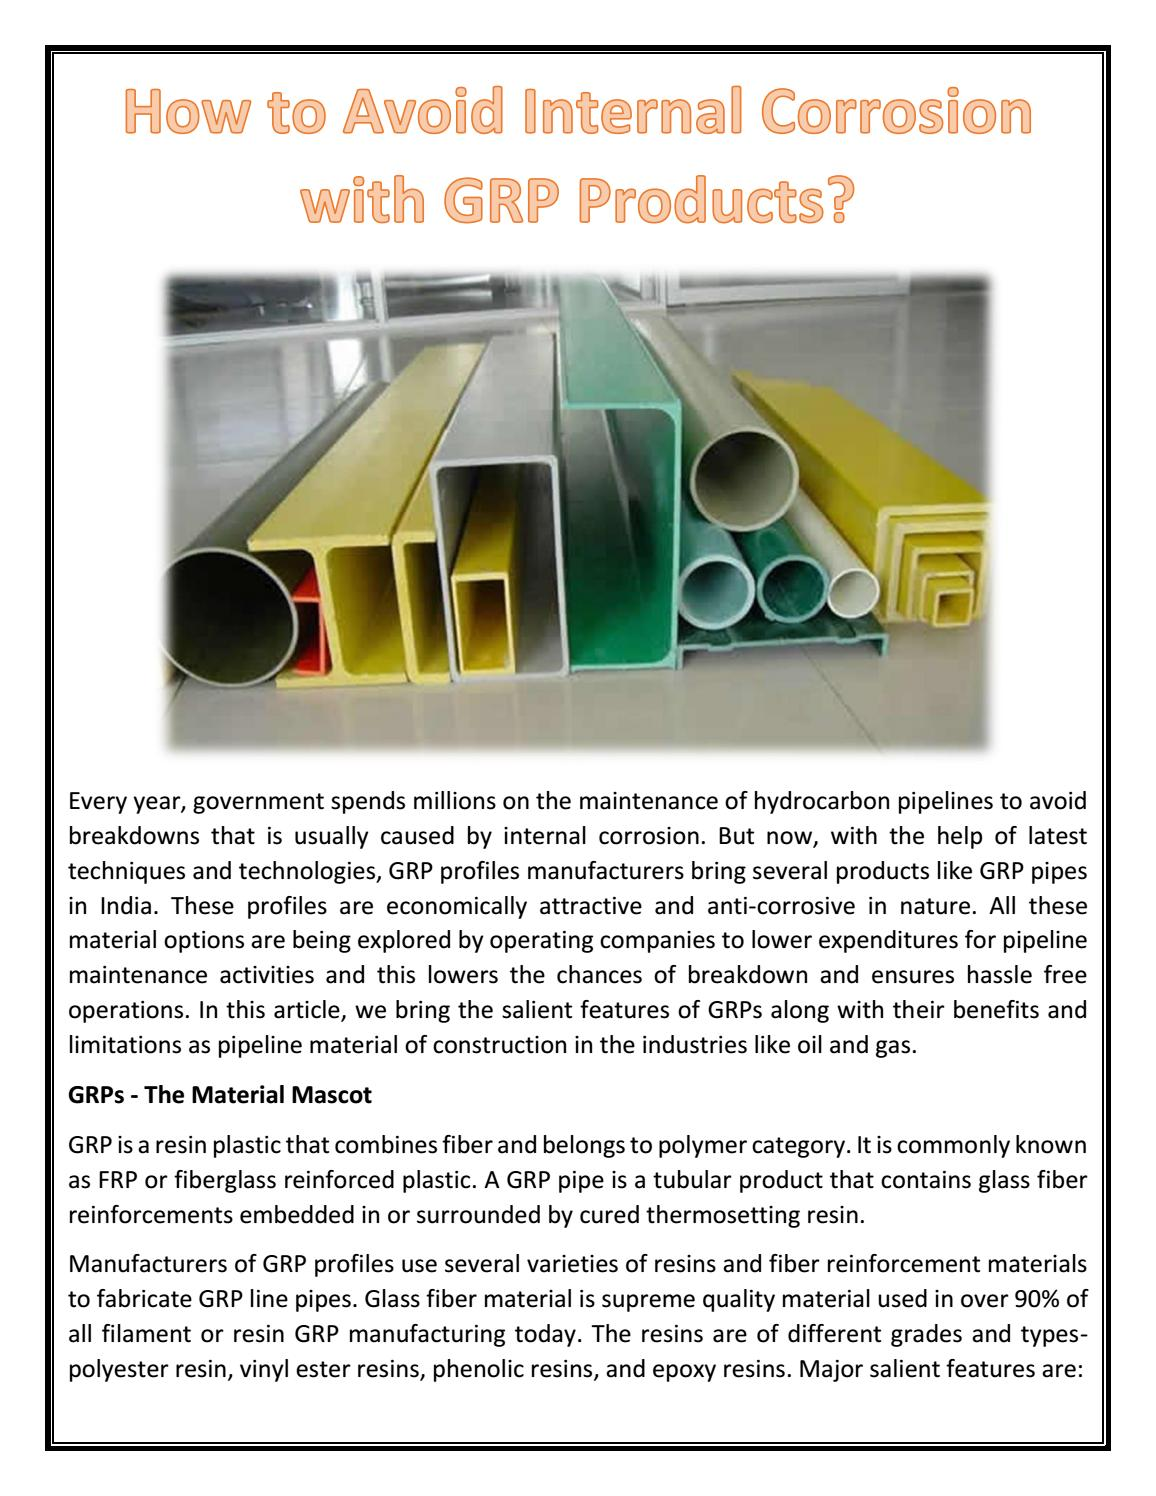 How to Avoid Internal Corrosion with GRP Products? by Fiber